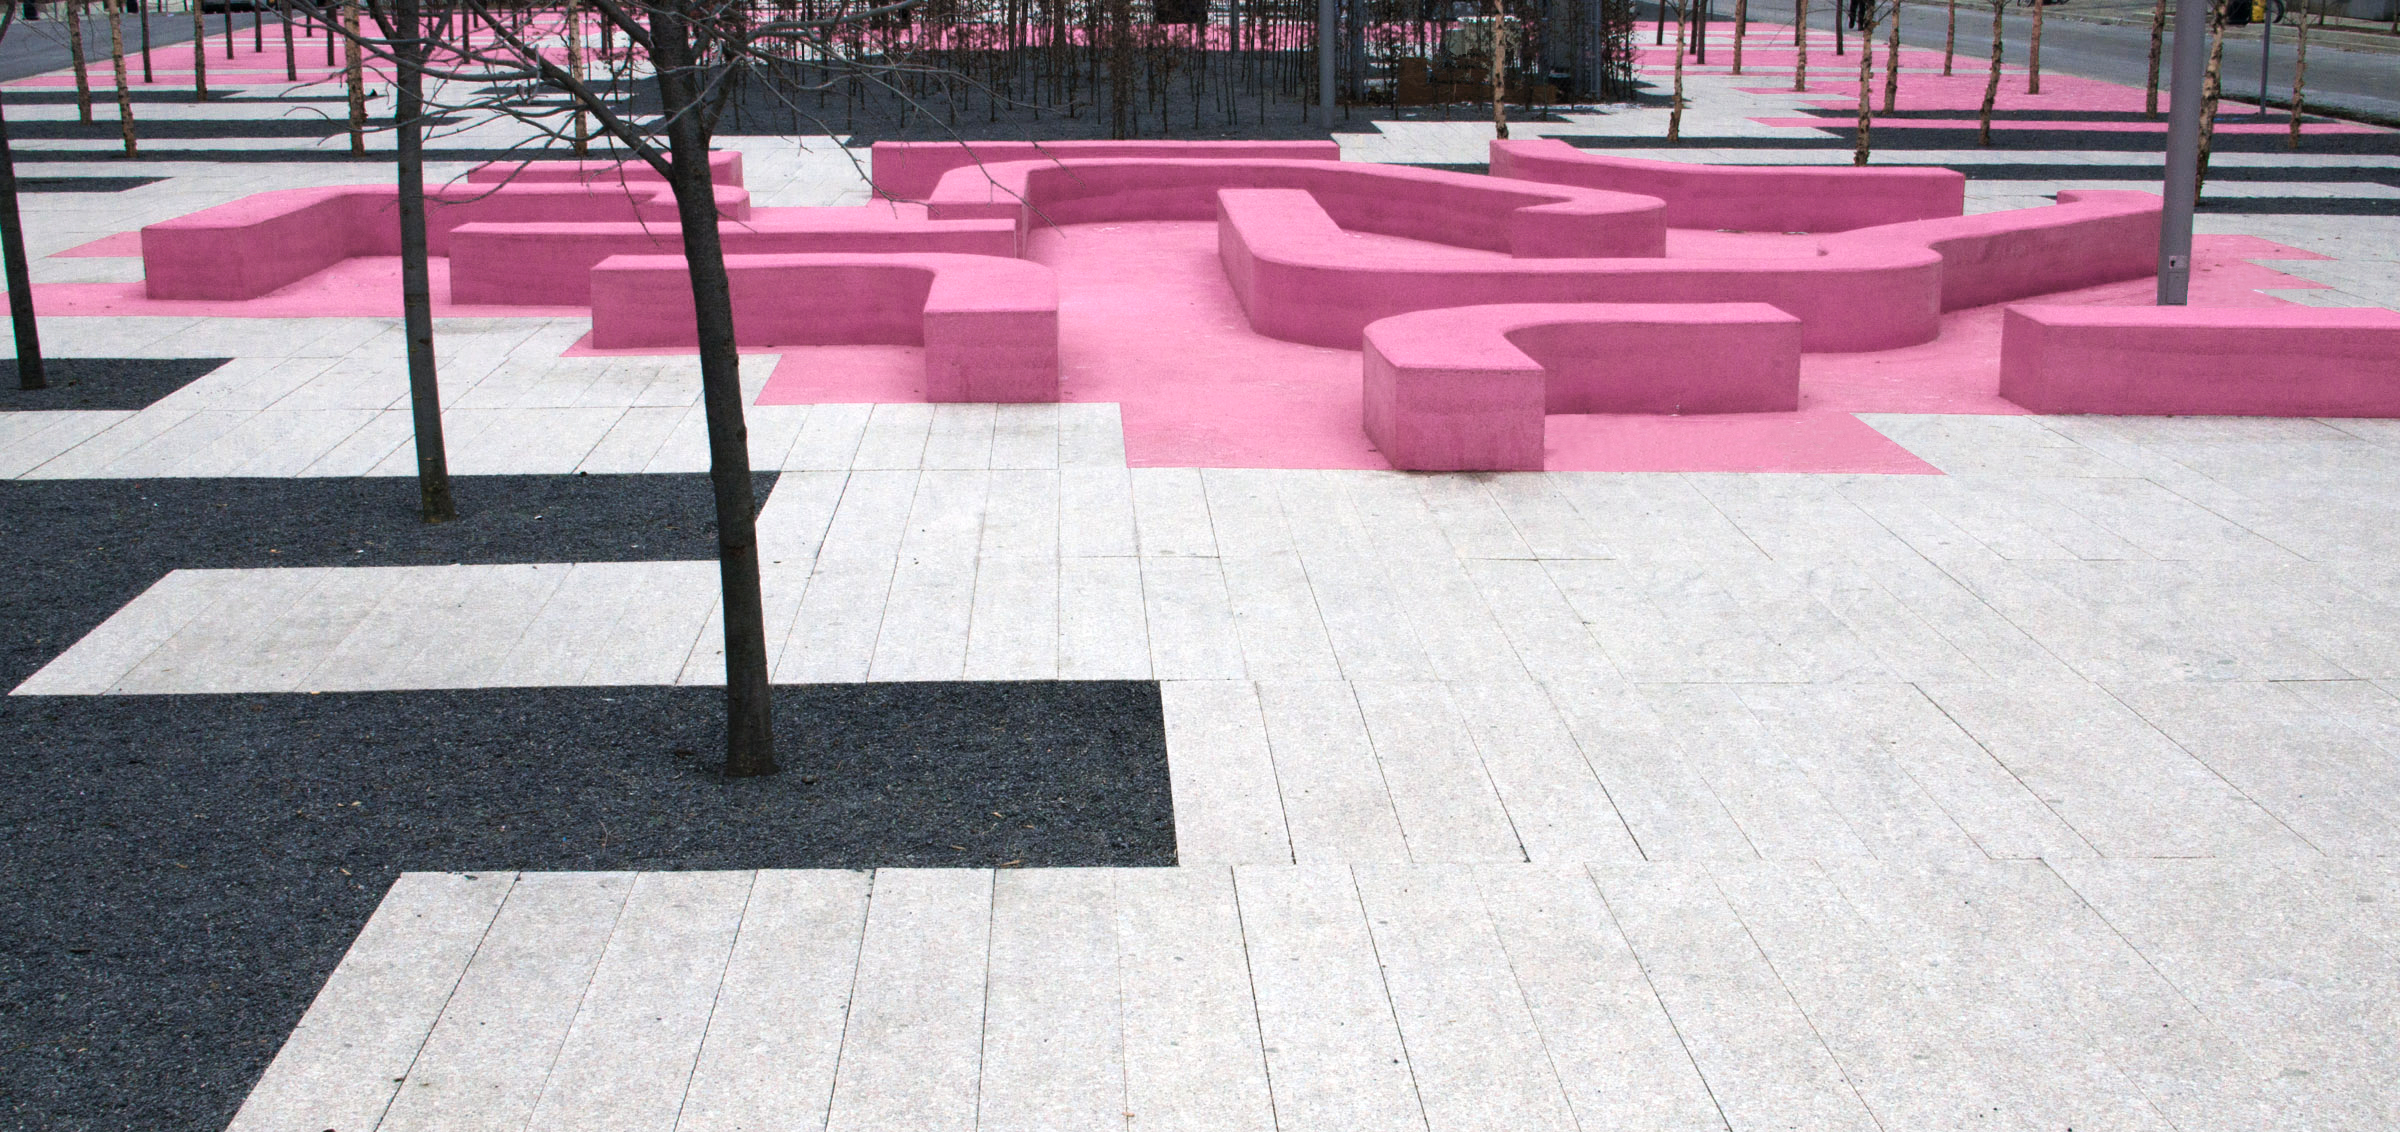 Copy of Copy of June Callwood Park - Pink Maze